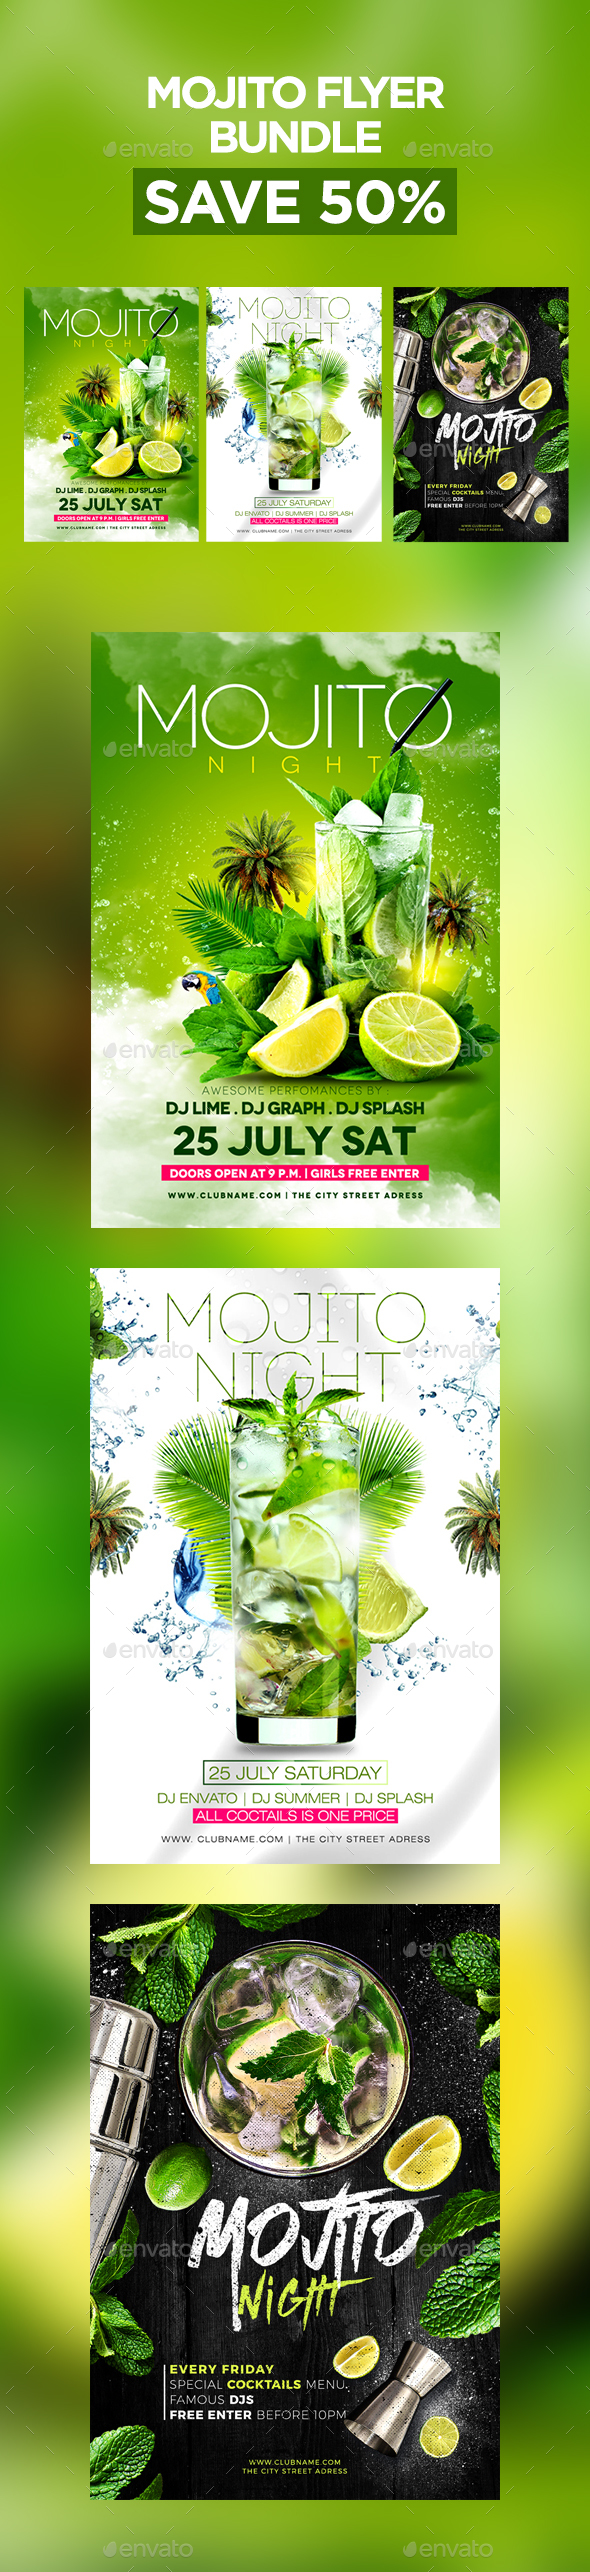 Mojito Flyer Bundle - Clubs & Parties Events